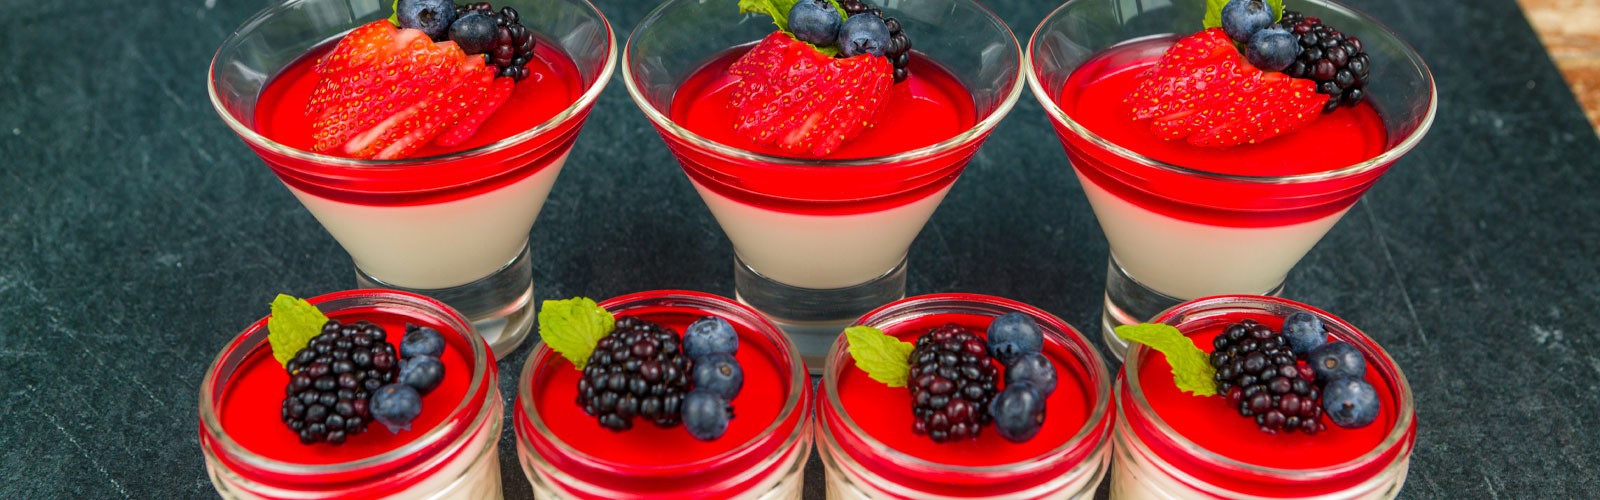 Panna Cotta desserts in glass jars